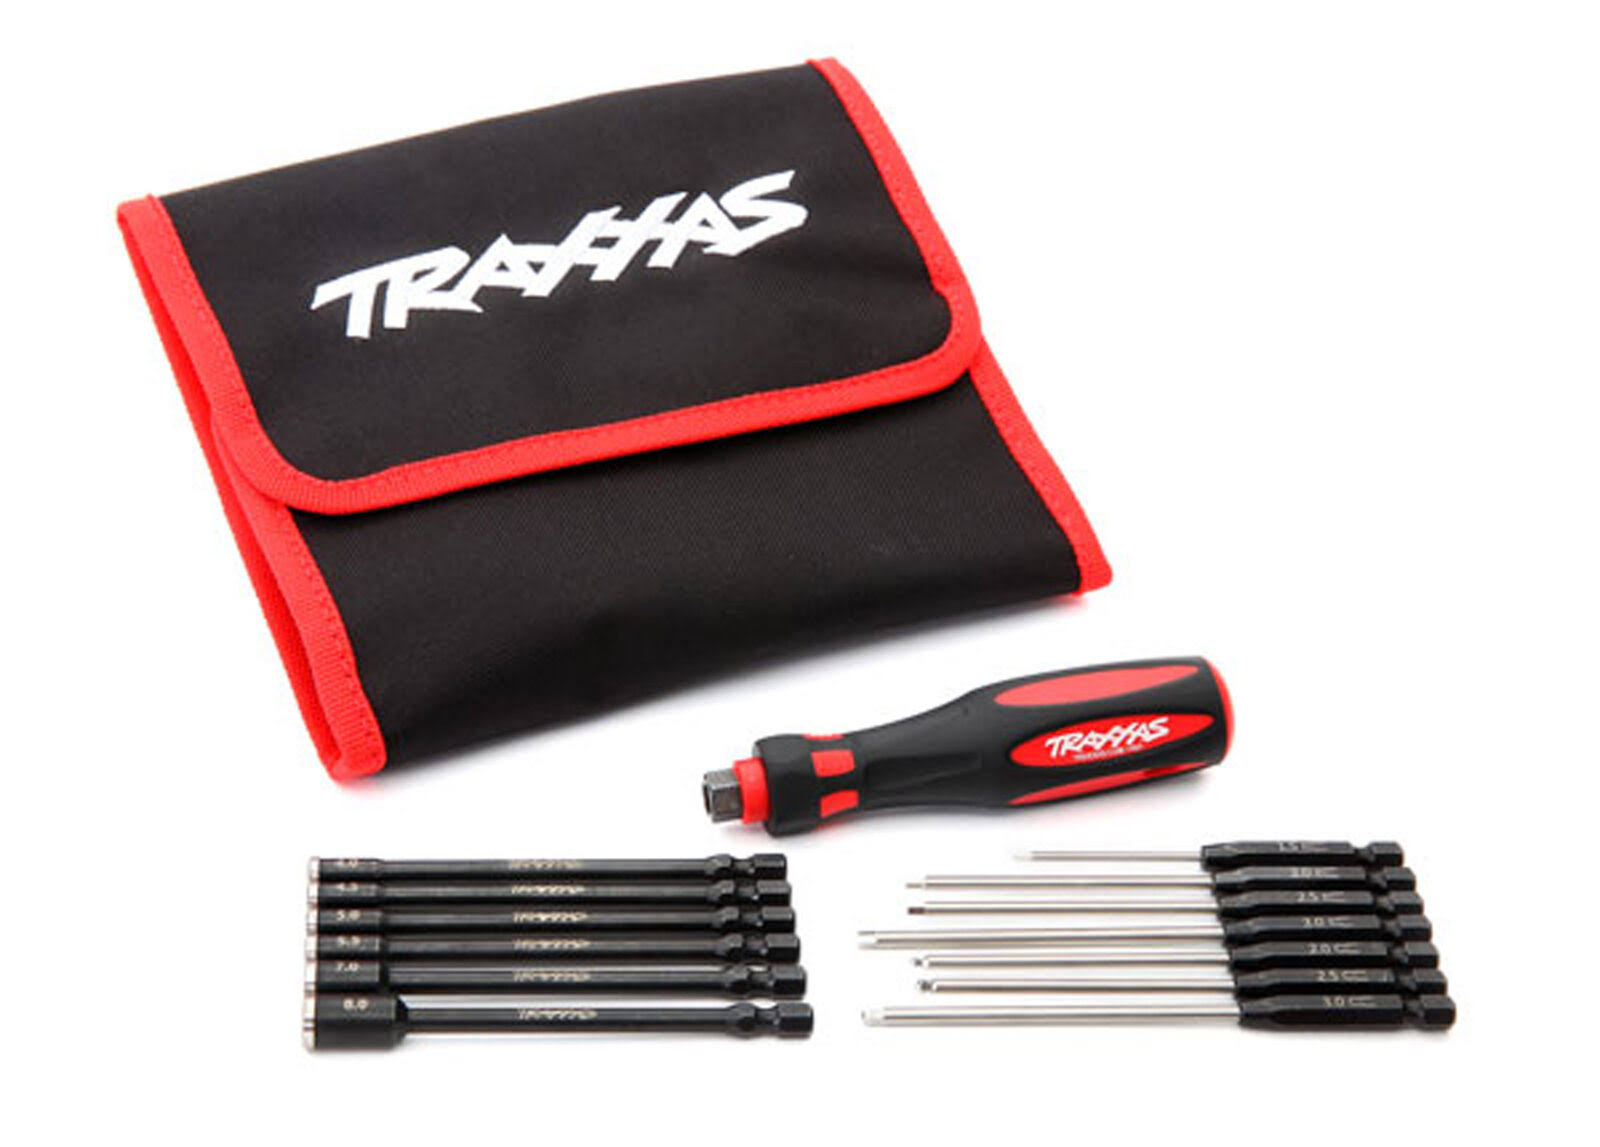 Traxxas 8710 Speed Bit Master Set, Hex and Nut Driver, 13-Piece